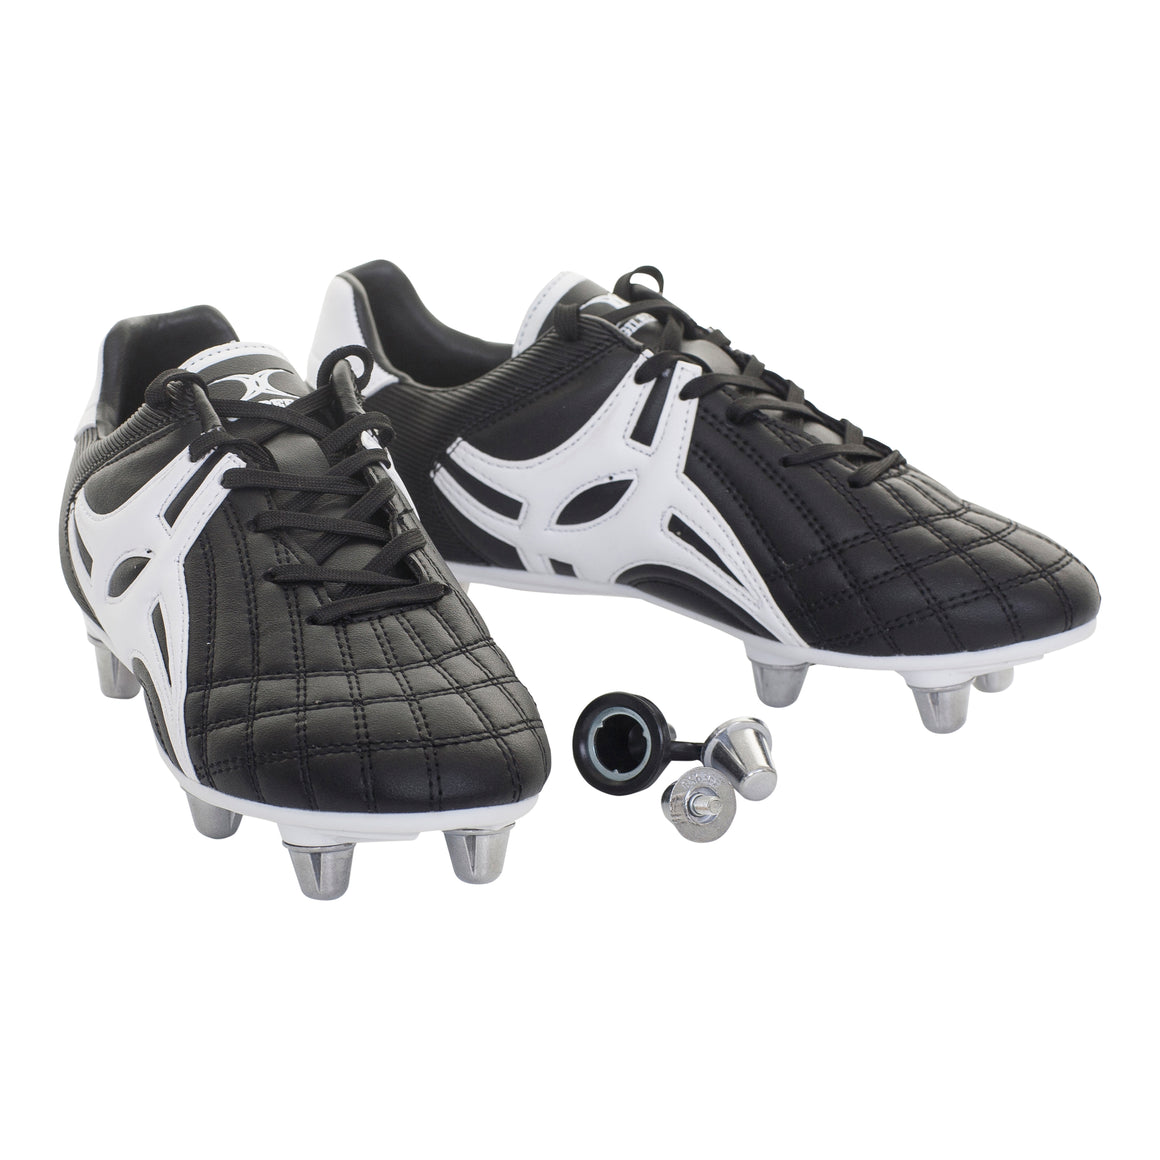 Sidestep XU10 Low Cut Football Boots for Kids in Black & White